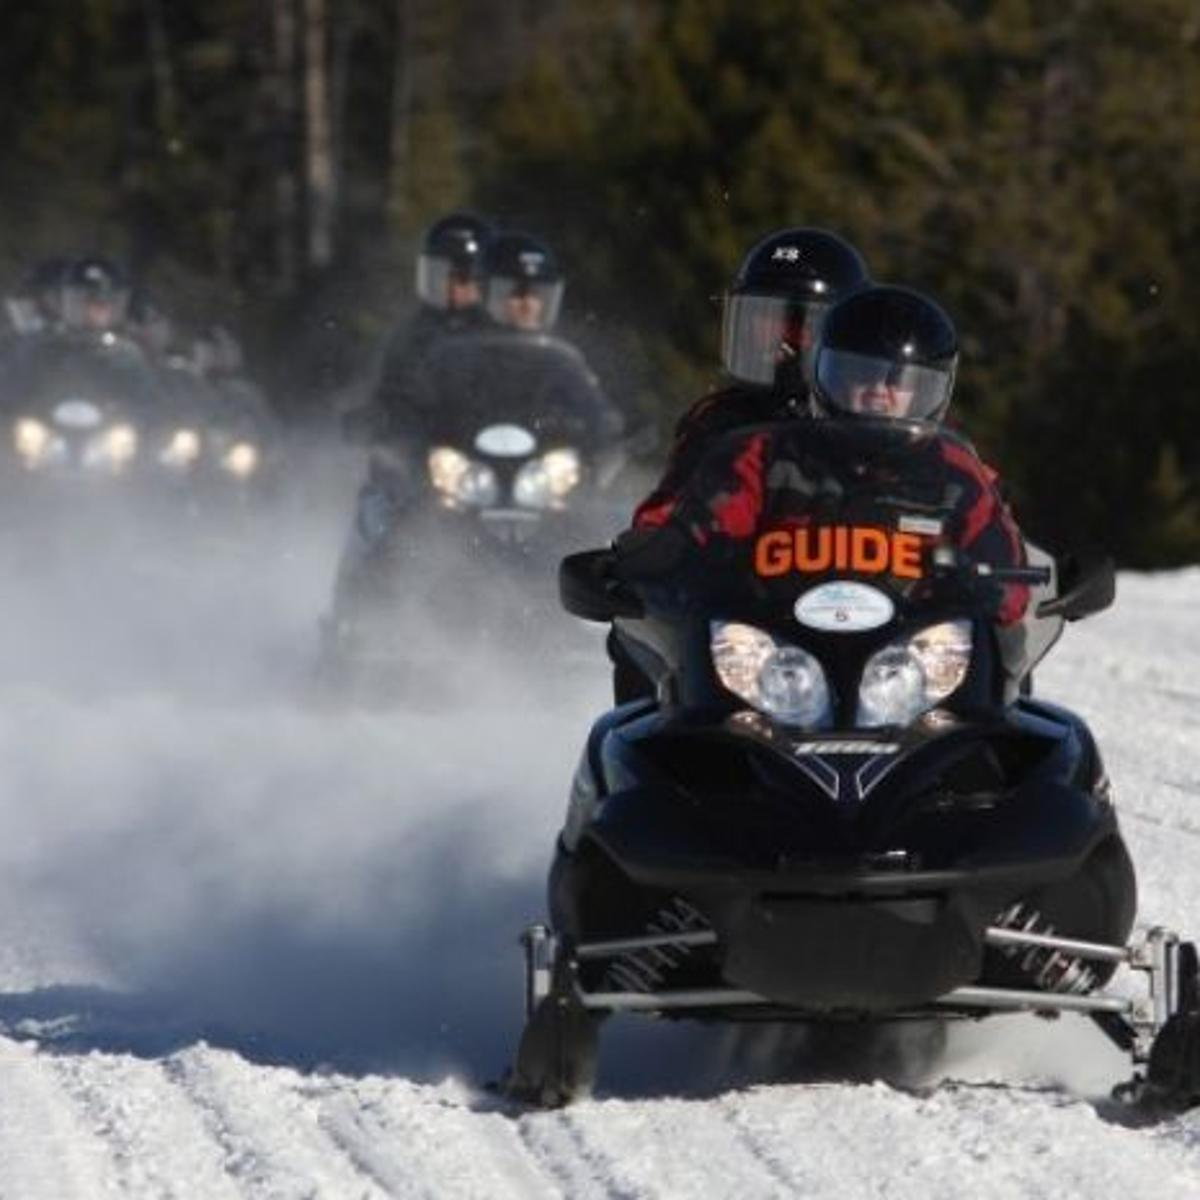 Snowmobile Travel Halted Between West Yellowstone Old Faithful Outdoors Billingsgazette Com